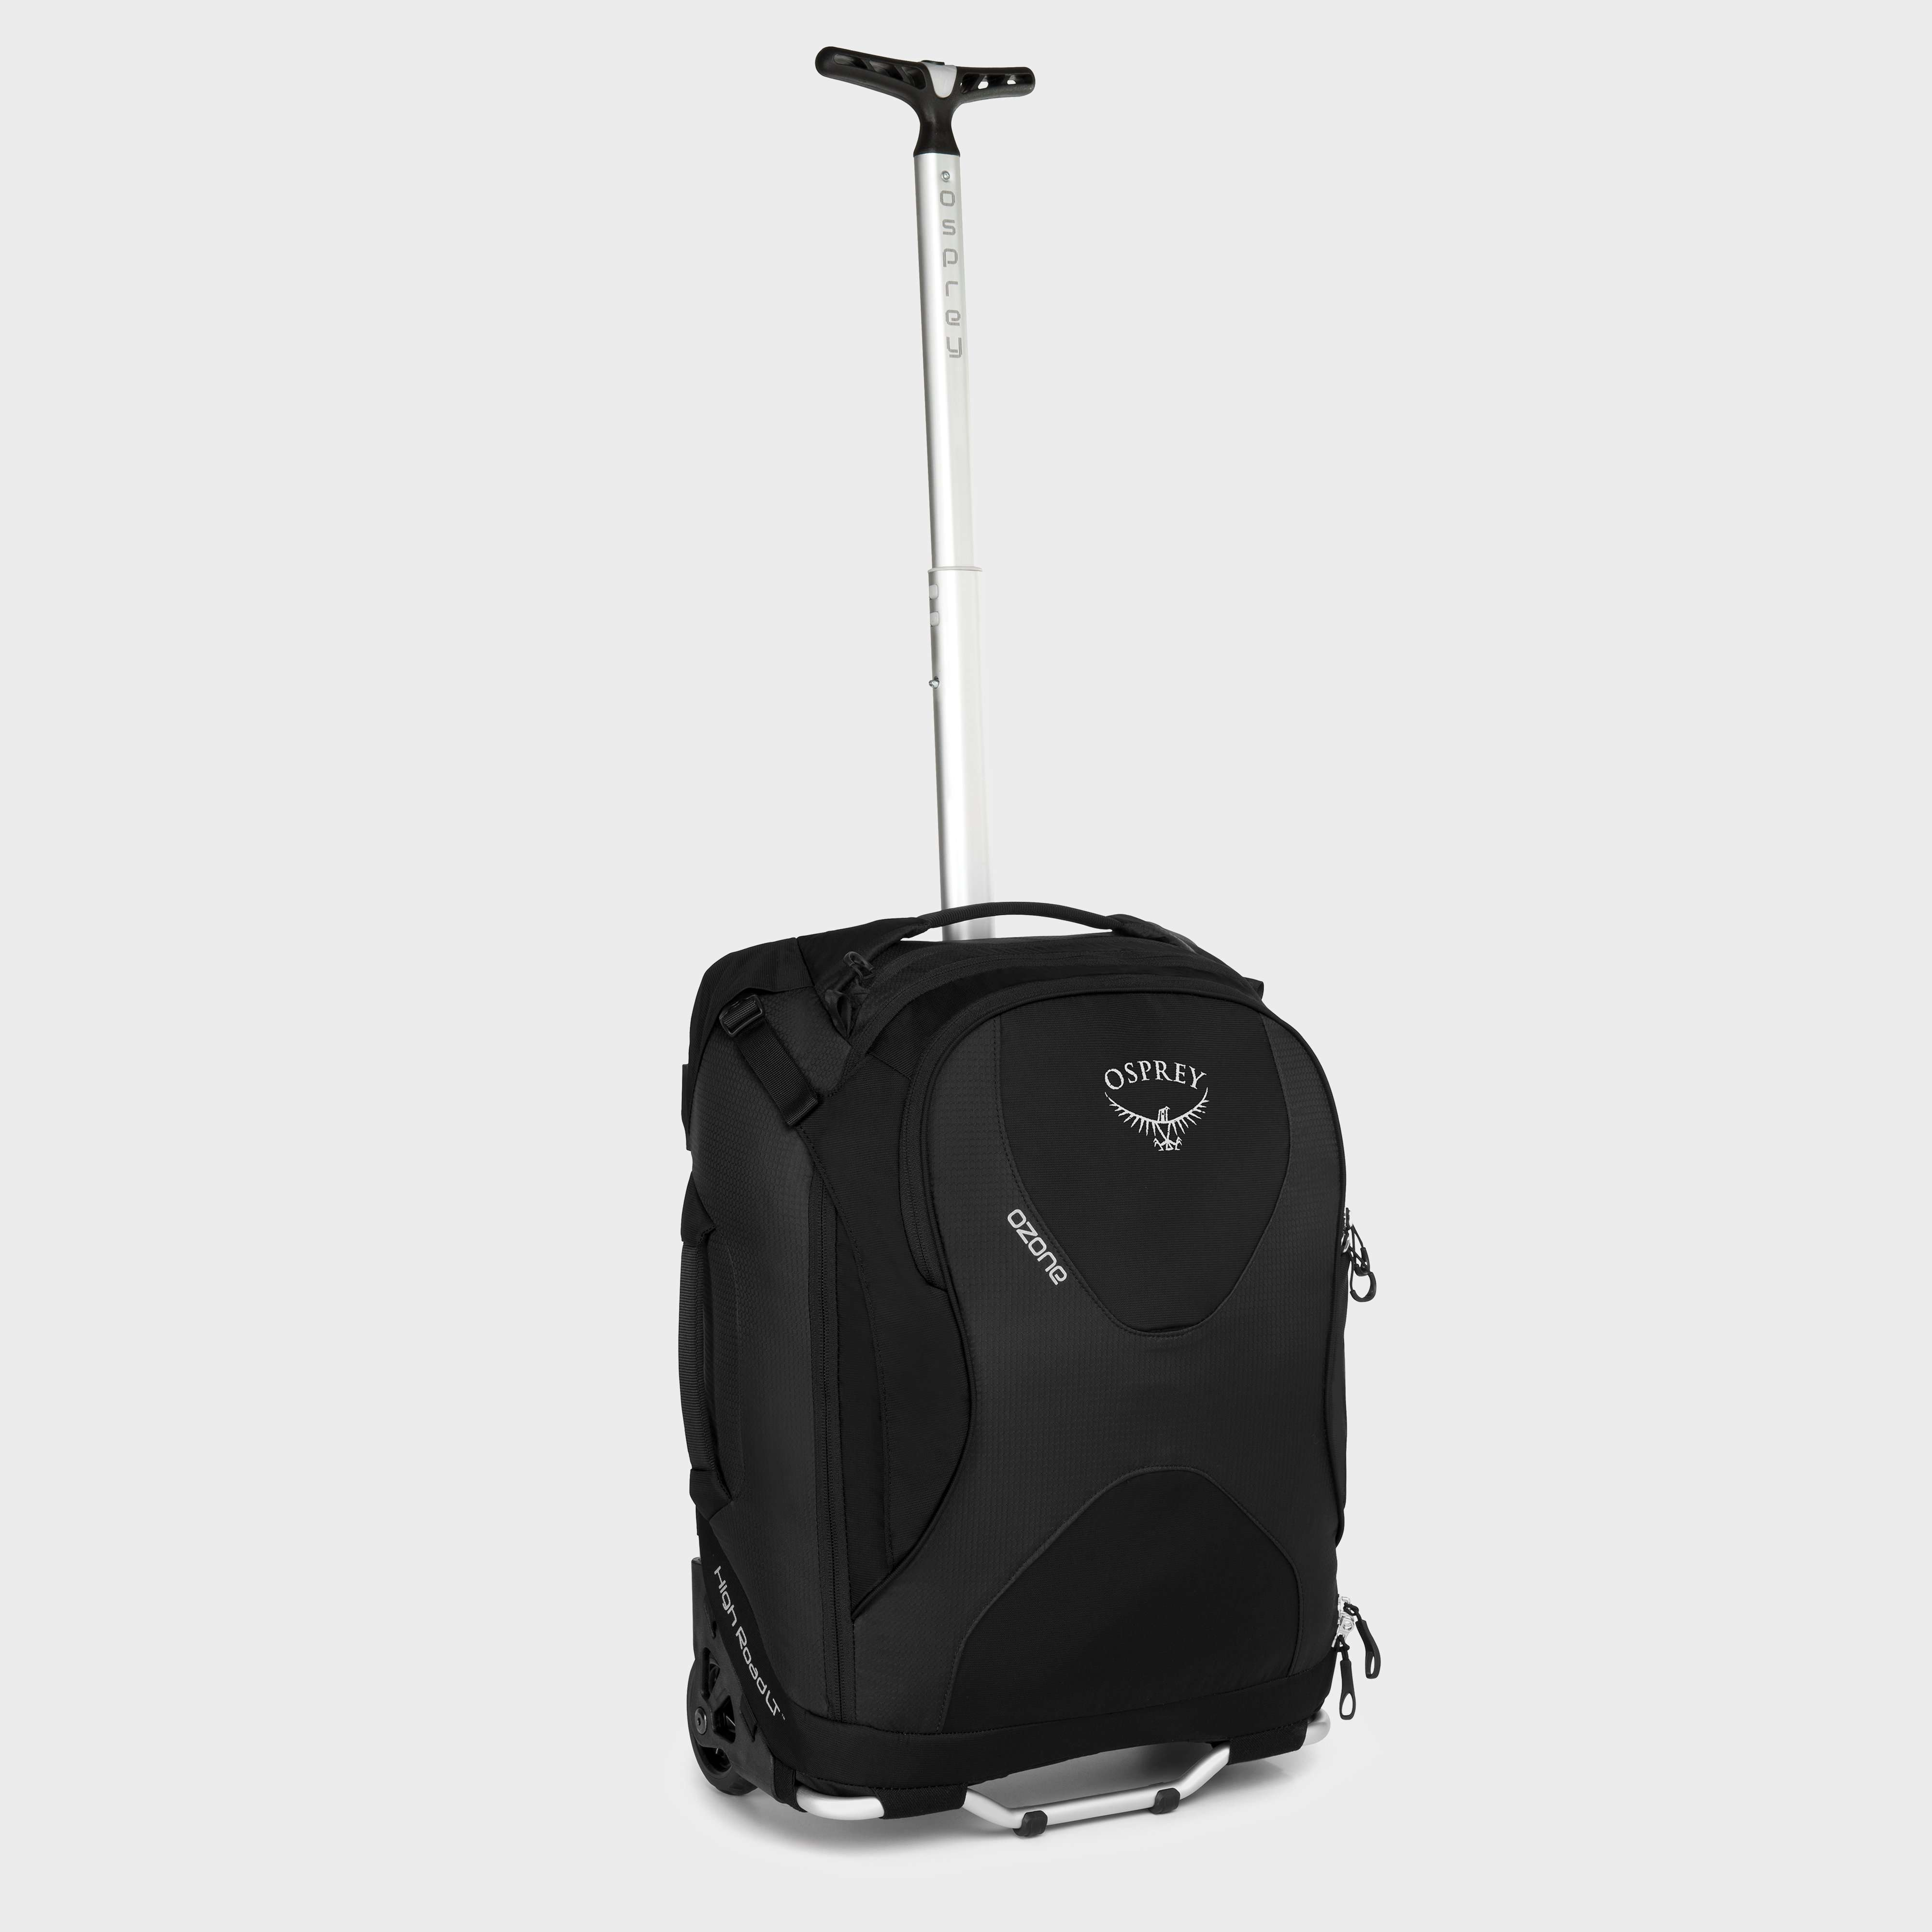 OSPREY Ozone 36L Travel Pack